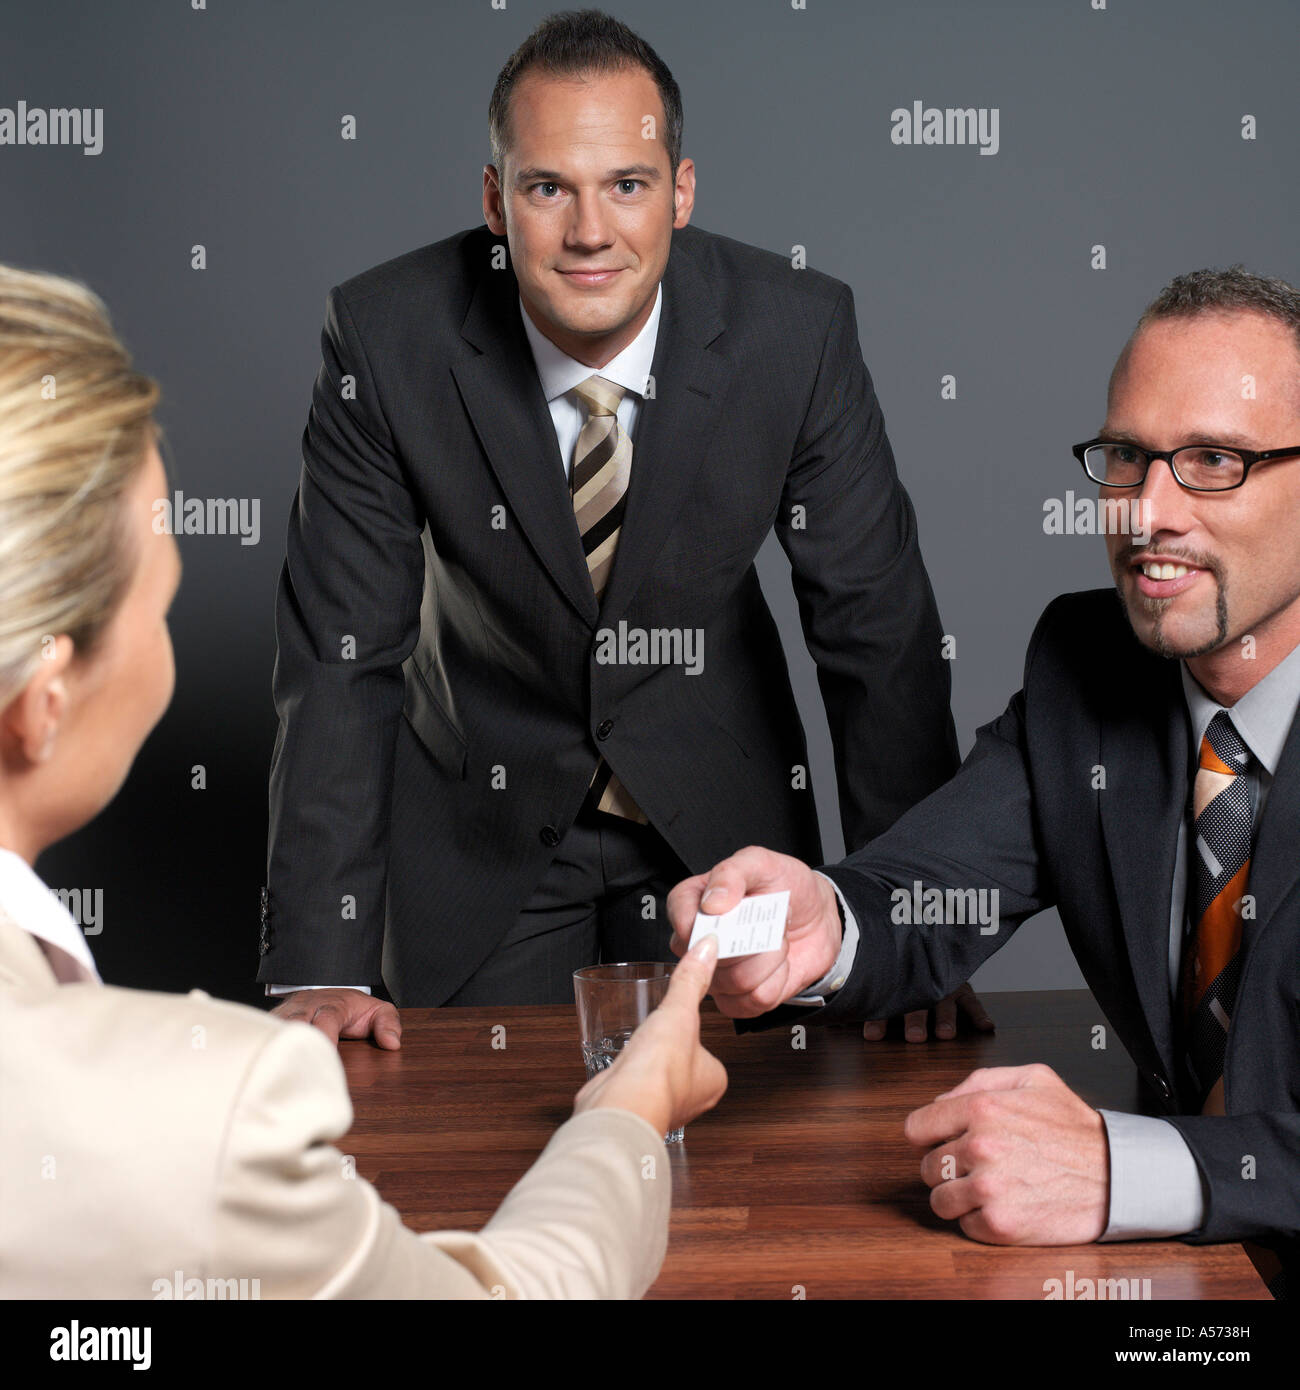 Business people holding conference - Stock Image